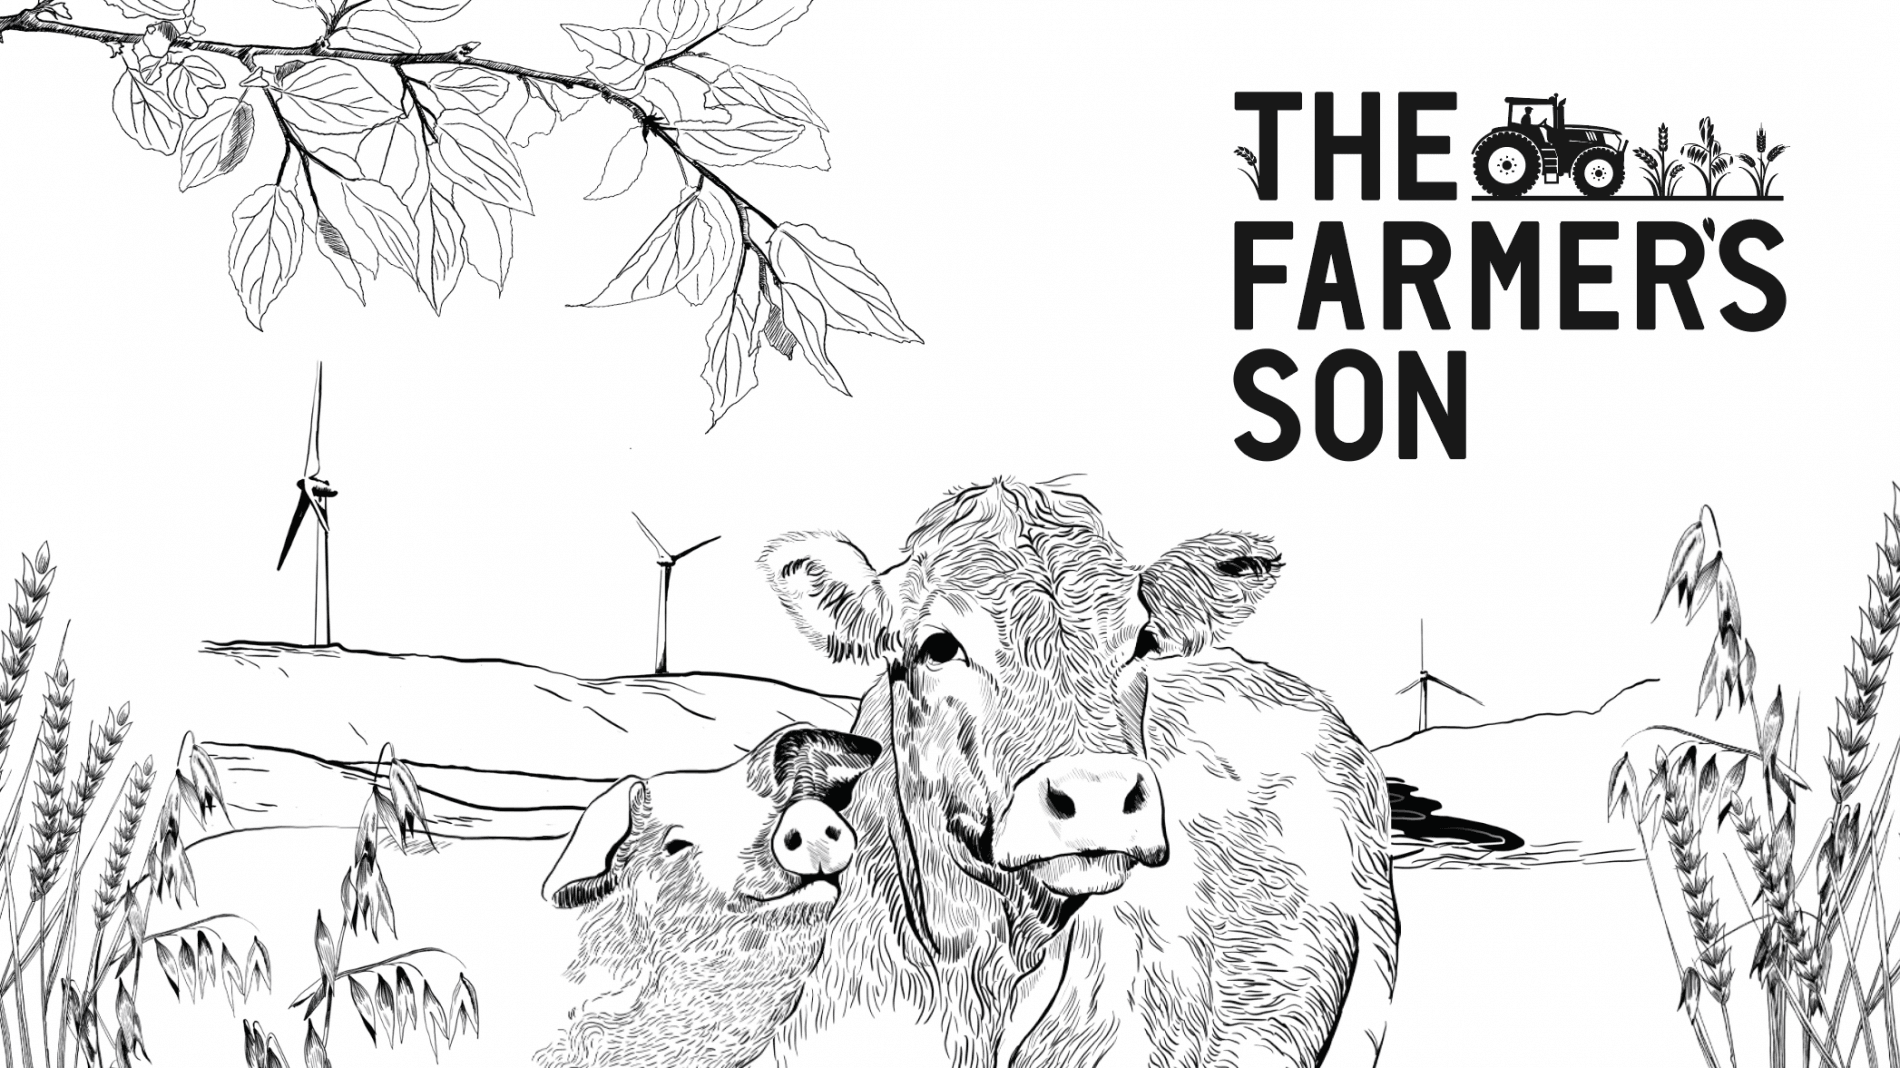 The Farmer's Son illustration of cows and pigs on the farm